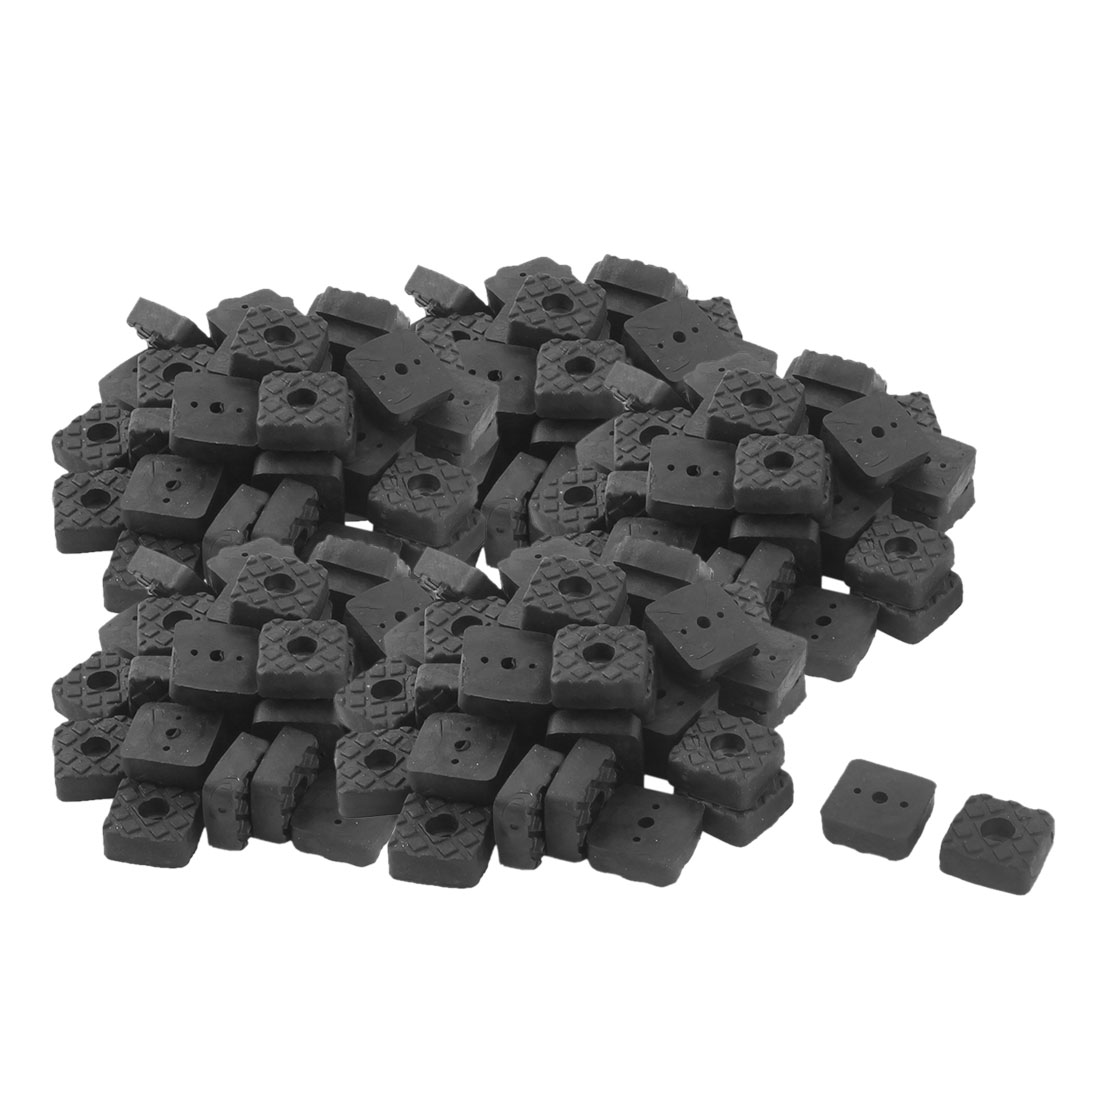 Office Rubber Square Table Furniture Foot Anti-slip Pad Black 22 x 22mm 200 Pcs